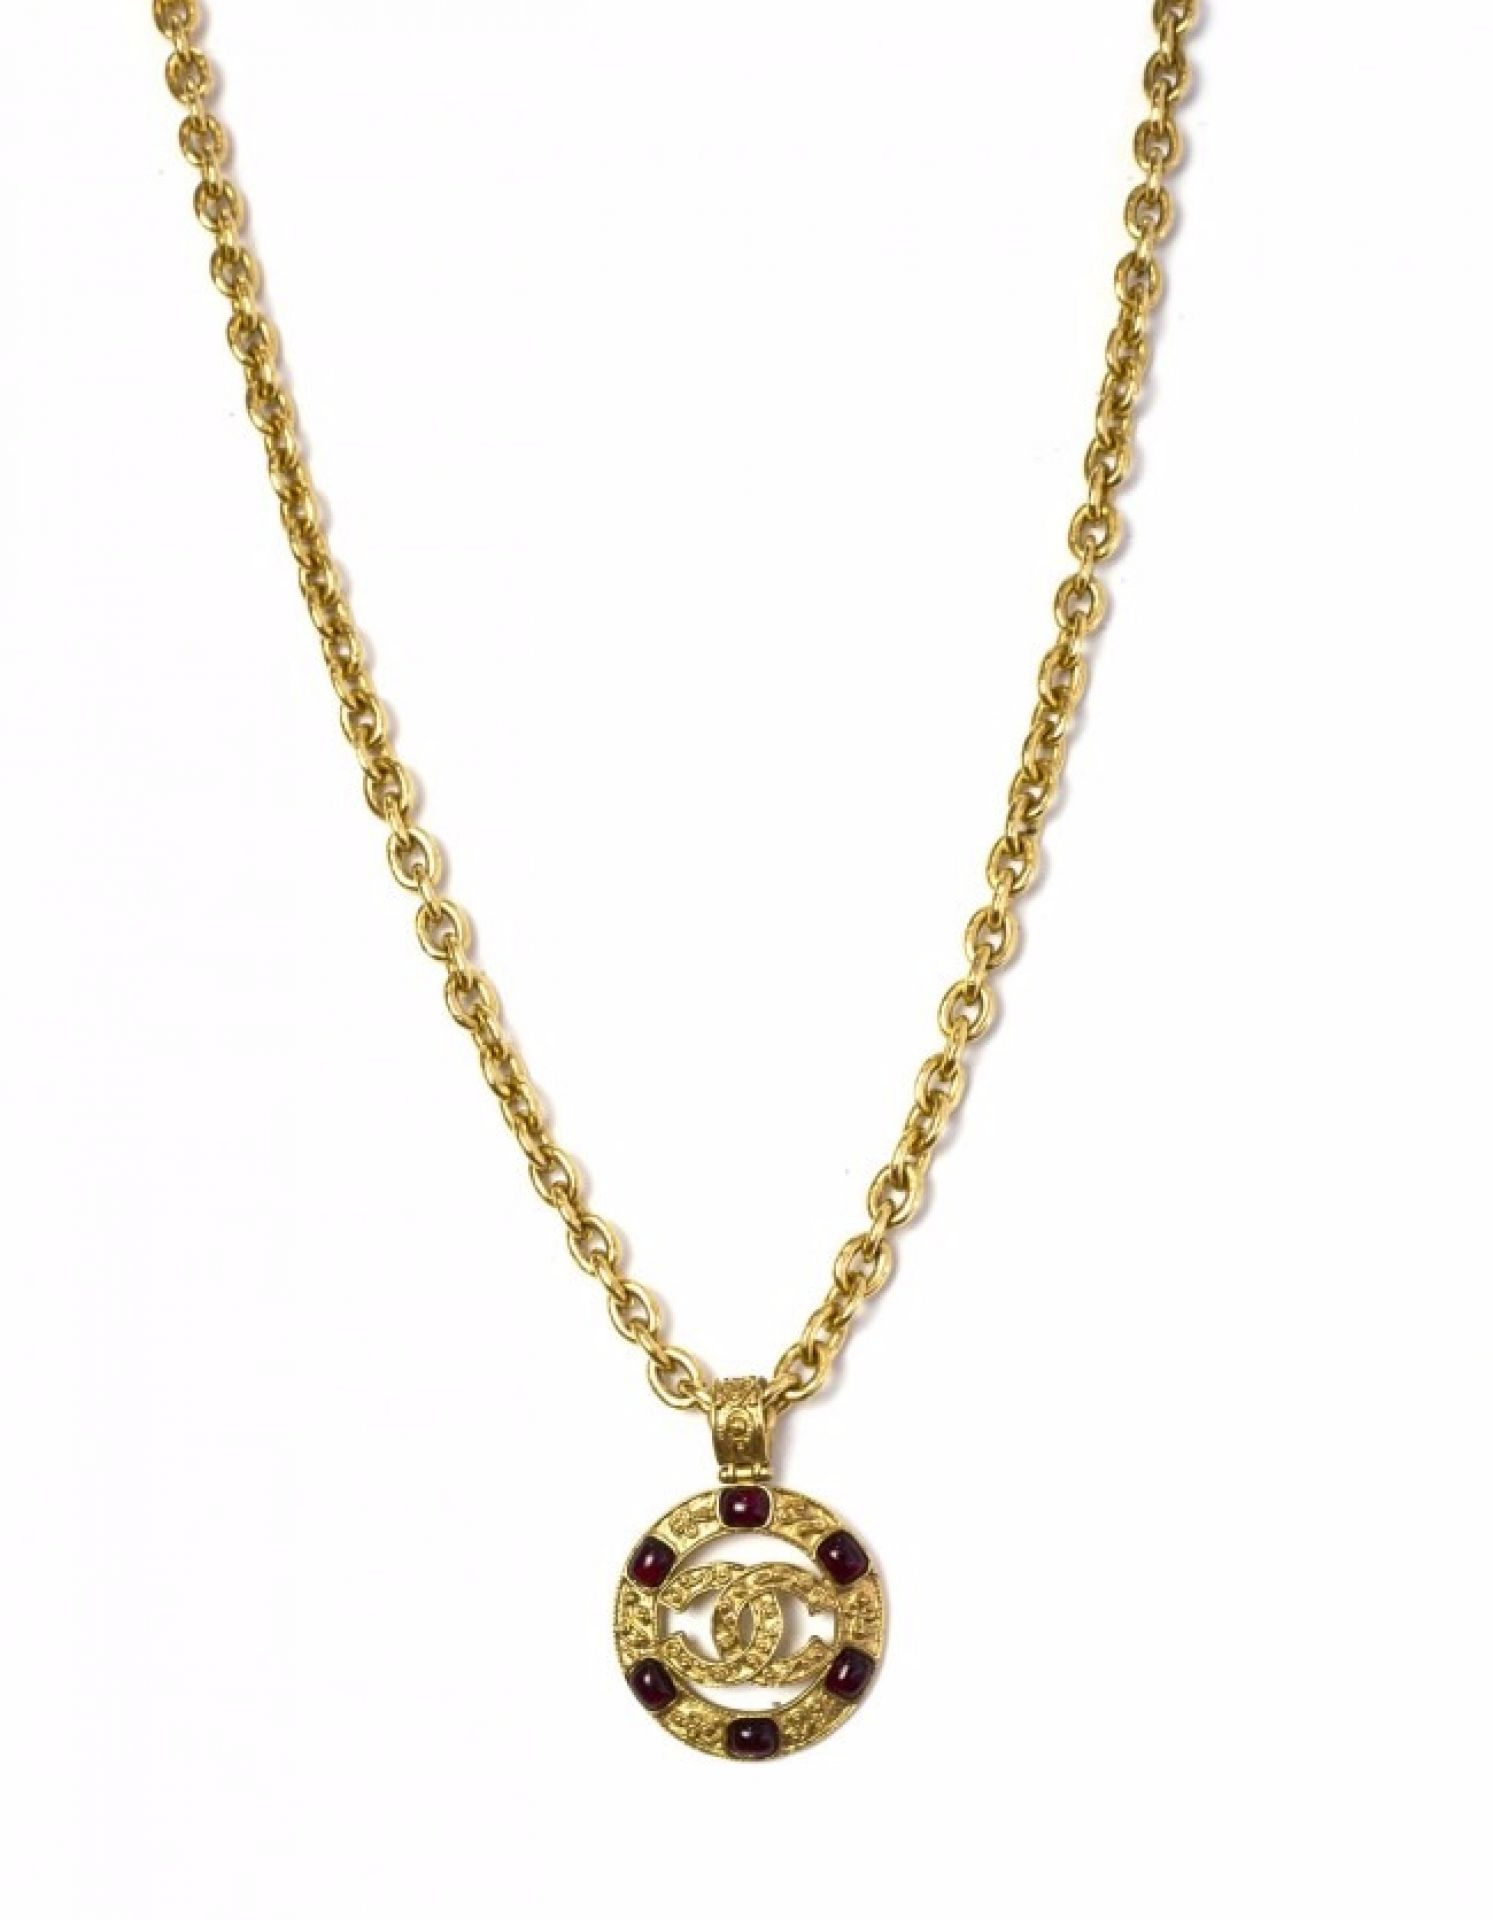 Chanel Vintage Red Gripoix & Goldtone Chain Necklace